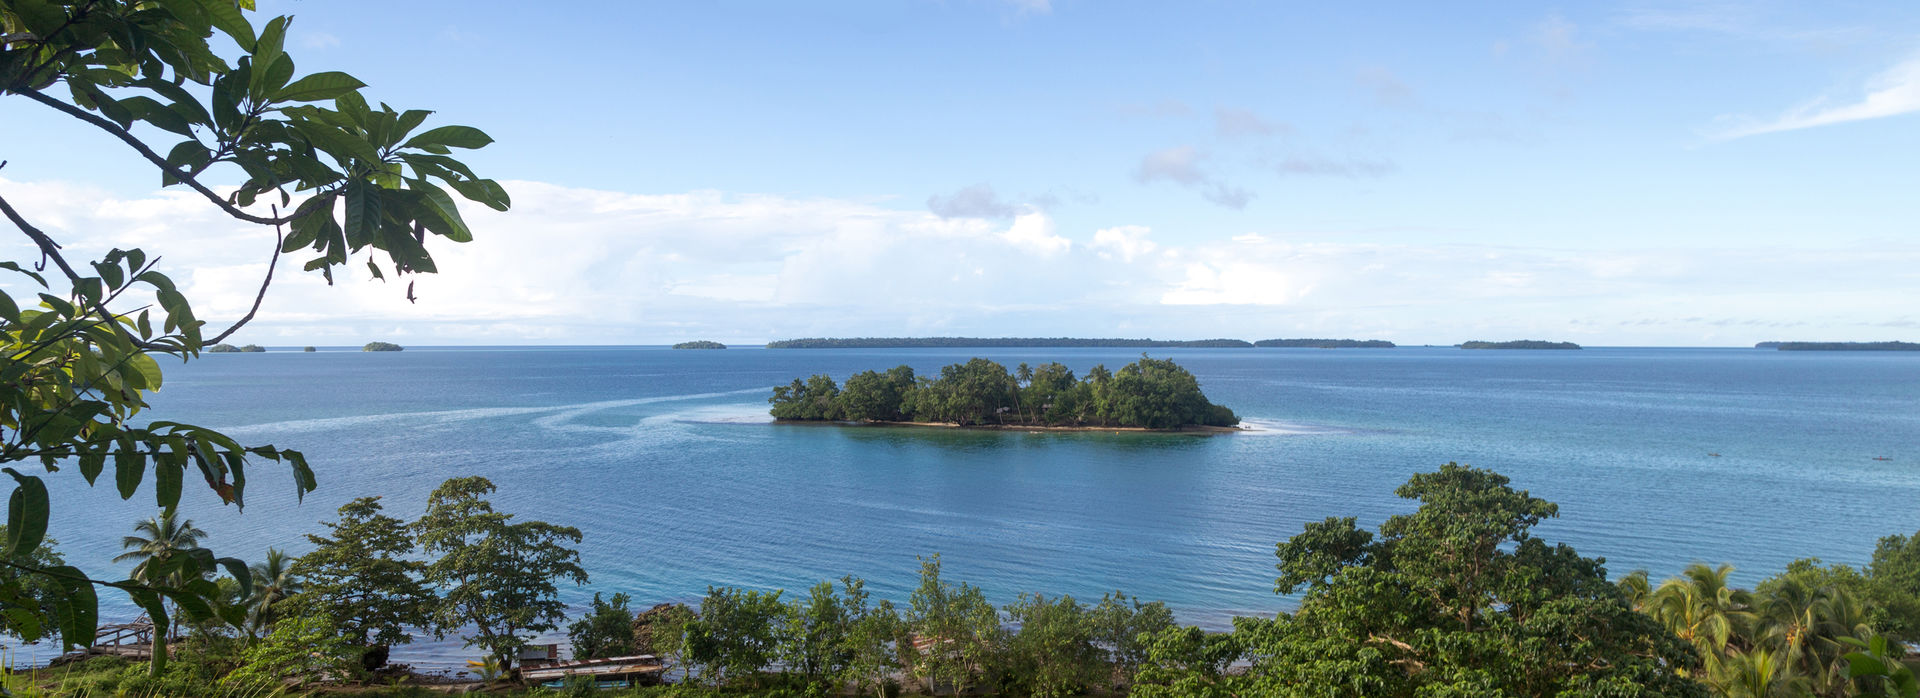 Pacific Islands: Solomon Islands